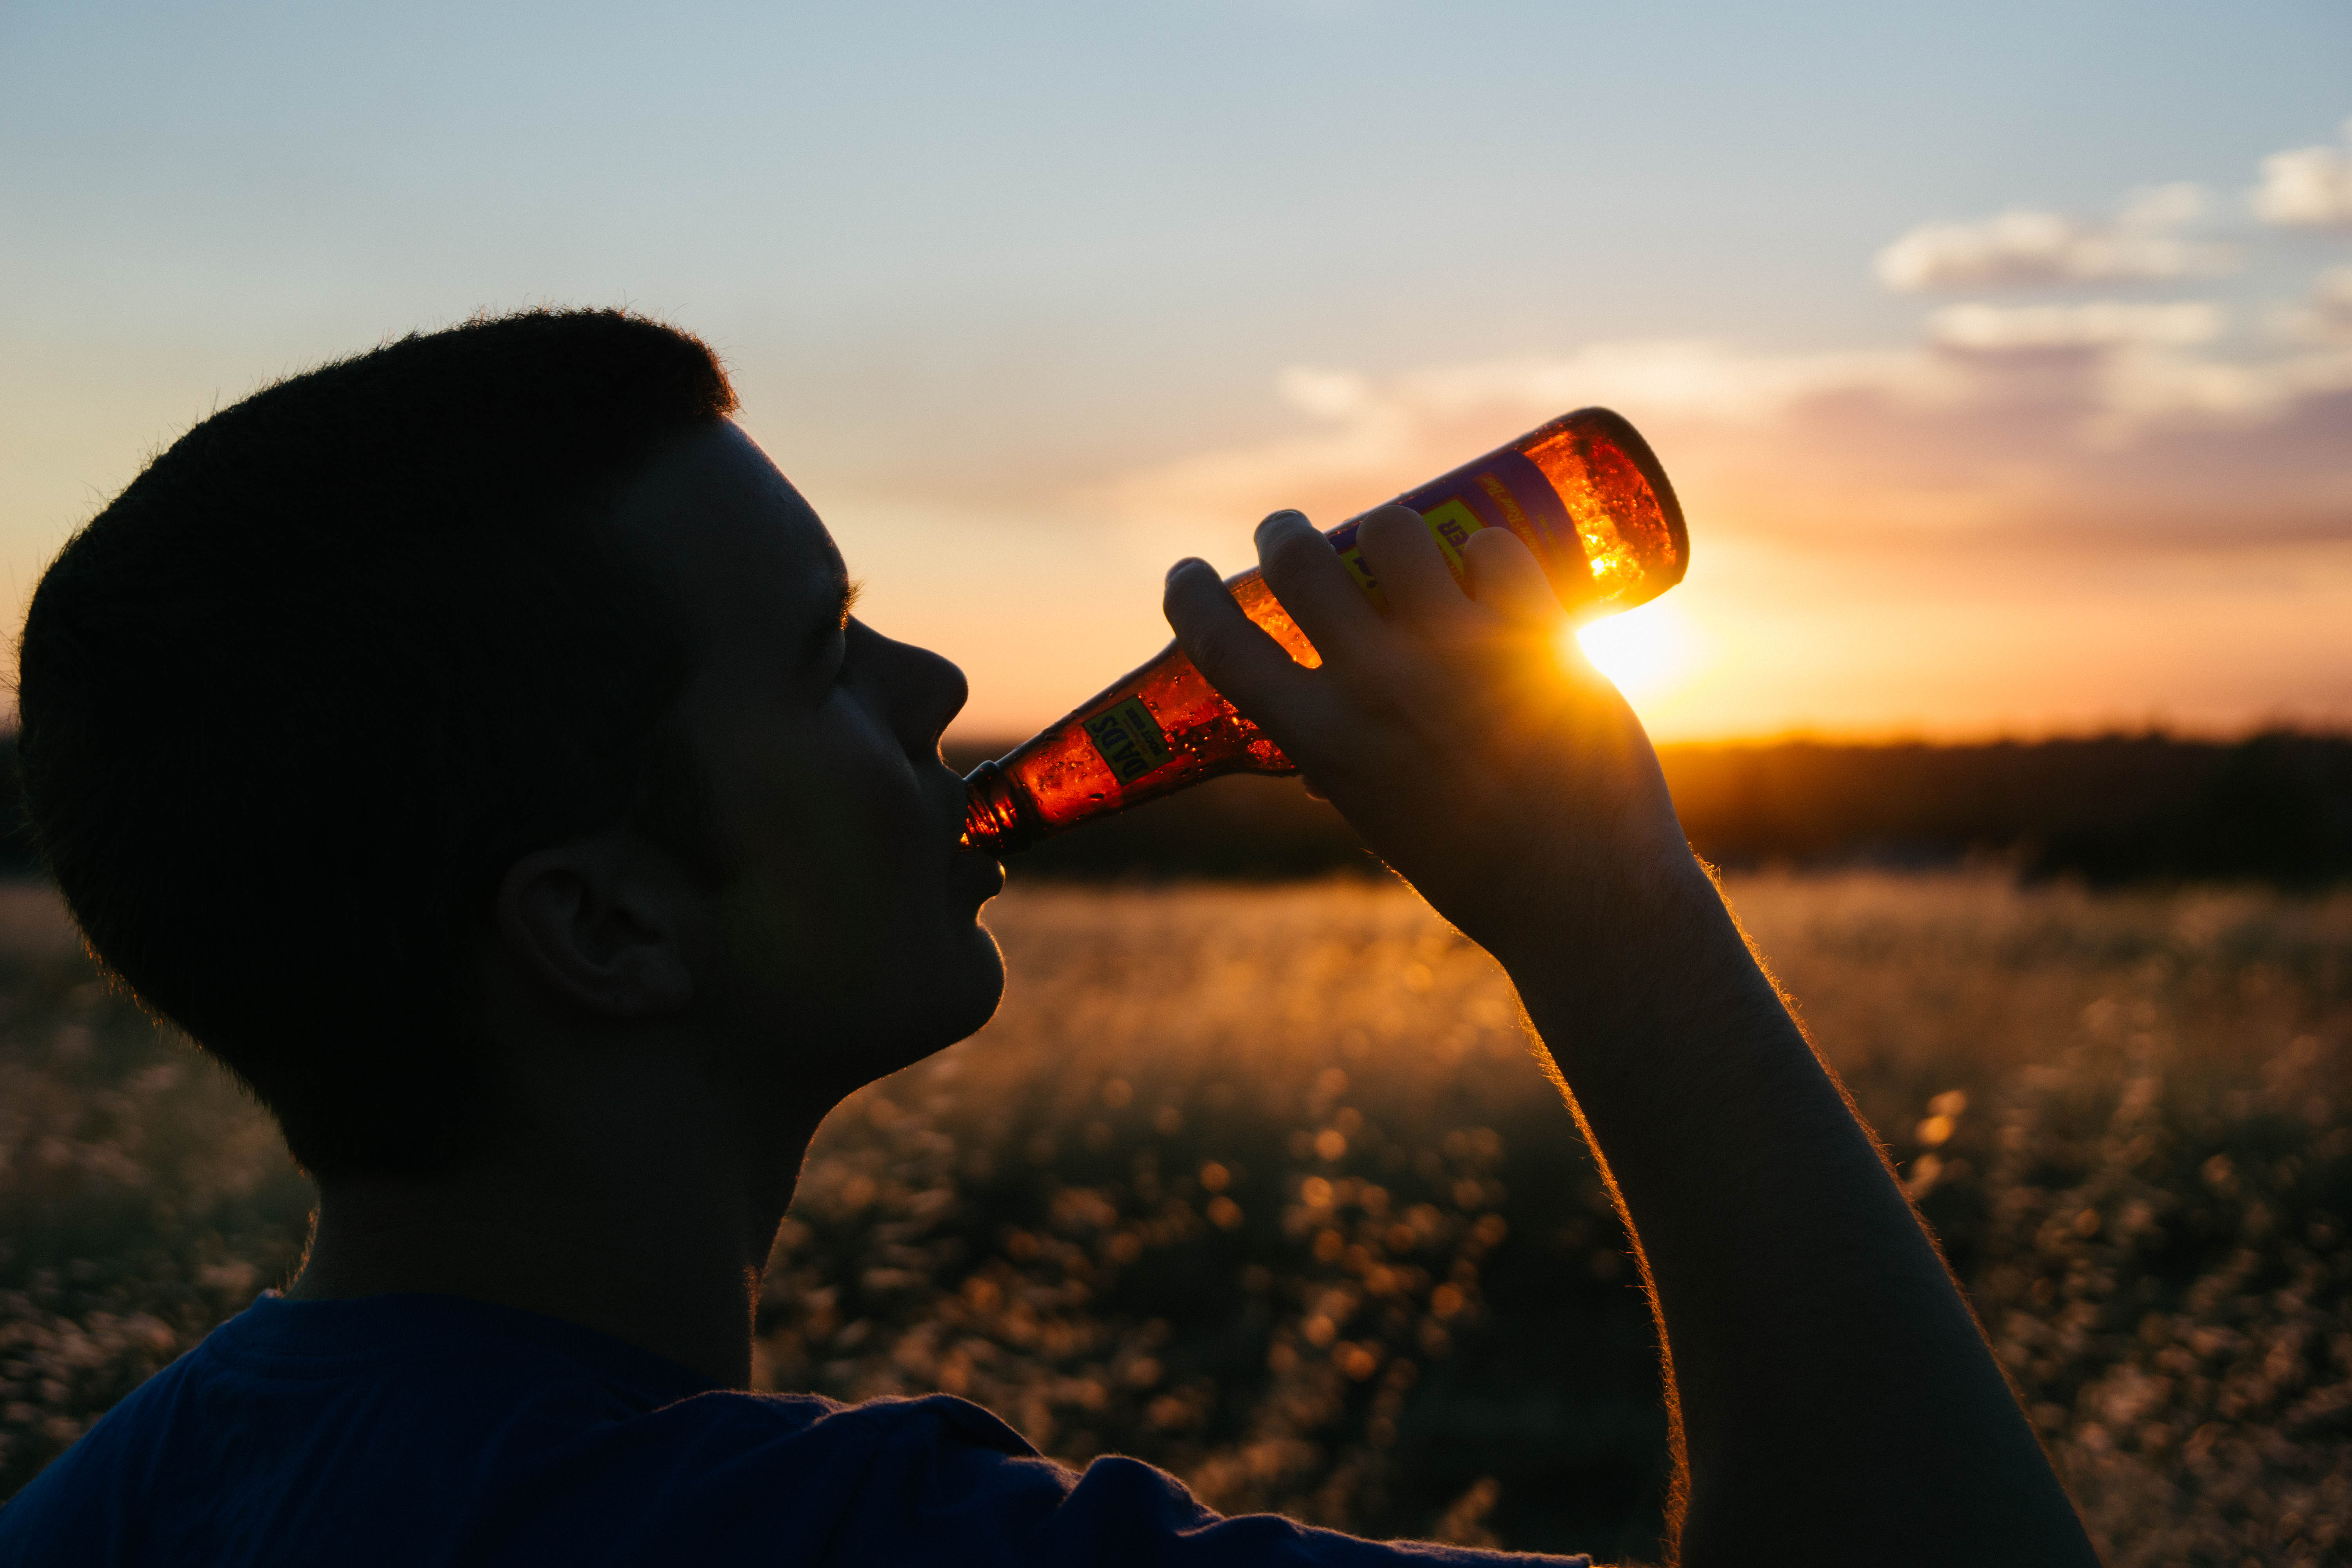 Molson Canadian, Coors Light and Mill Street on Tap for Canadians on Social Media